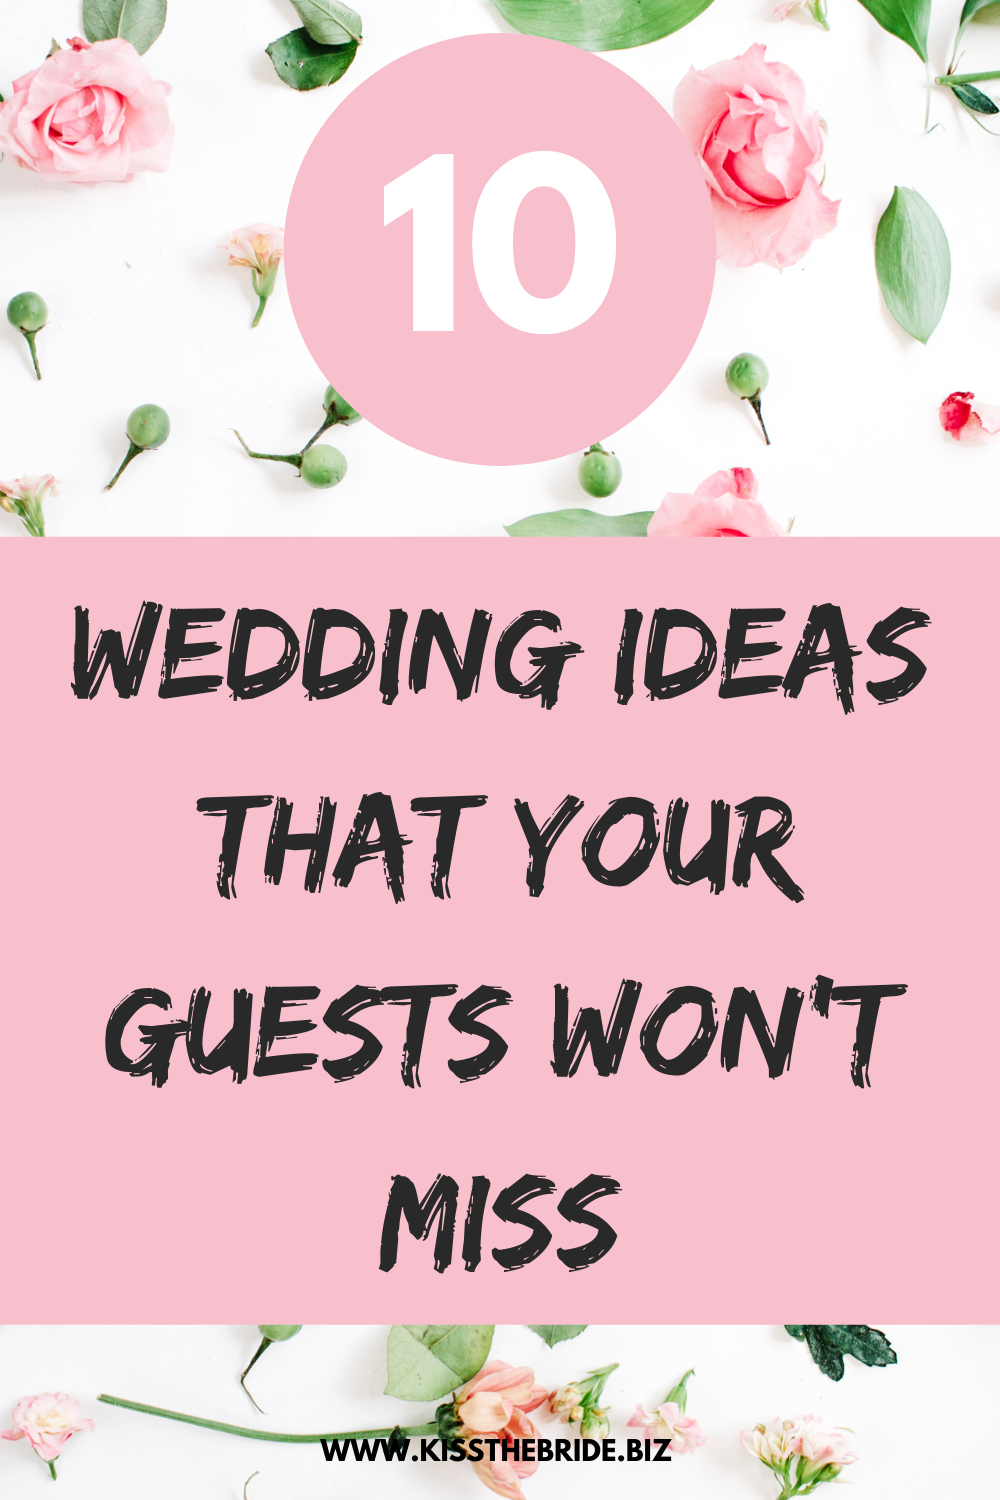 Wedding ideas you don't need